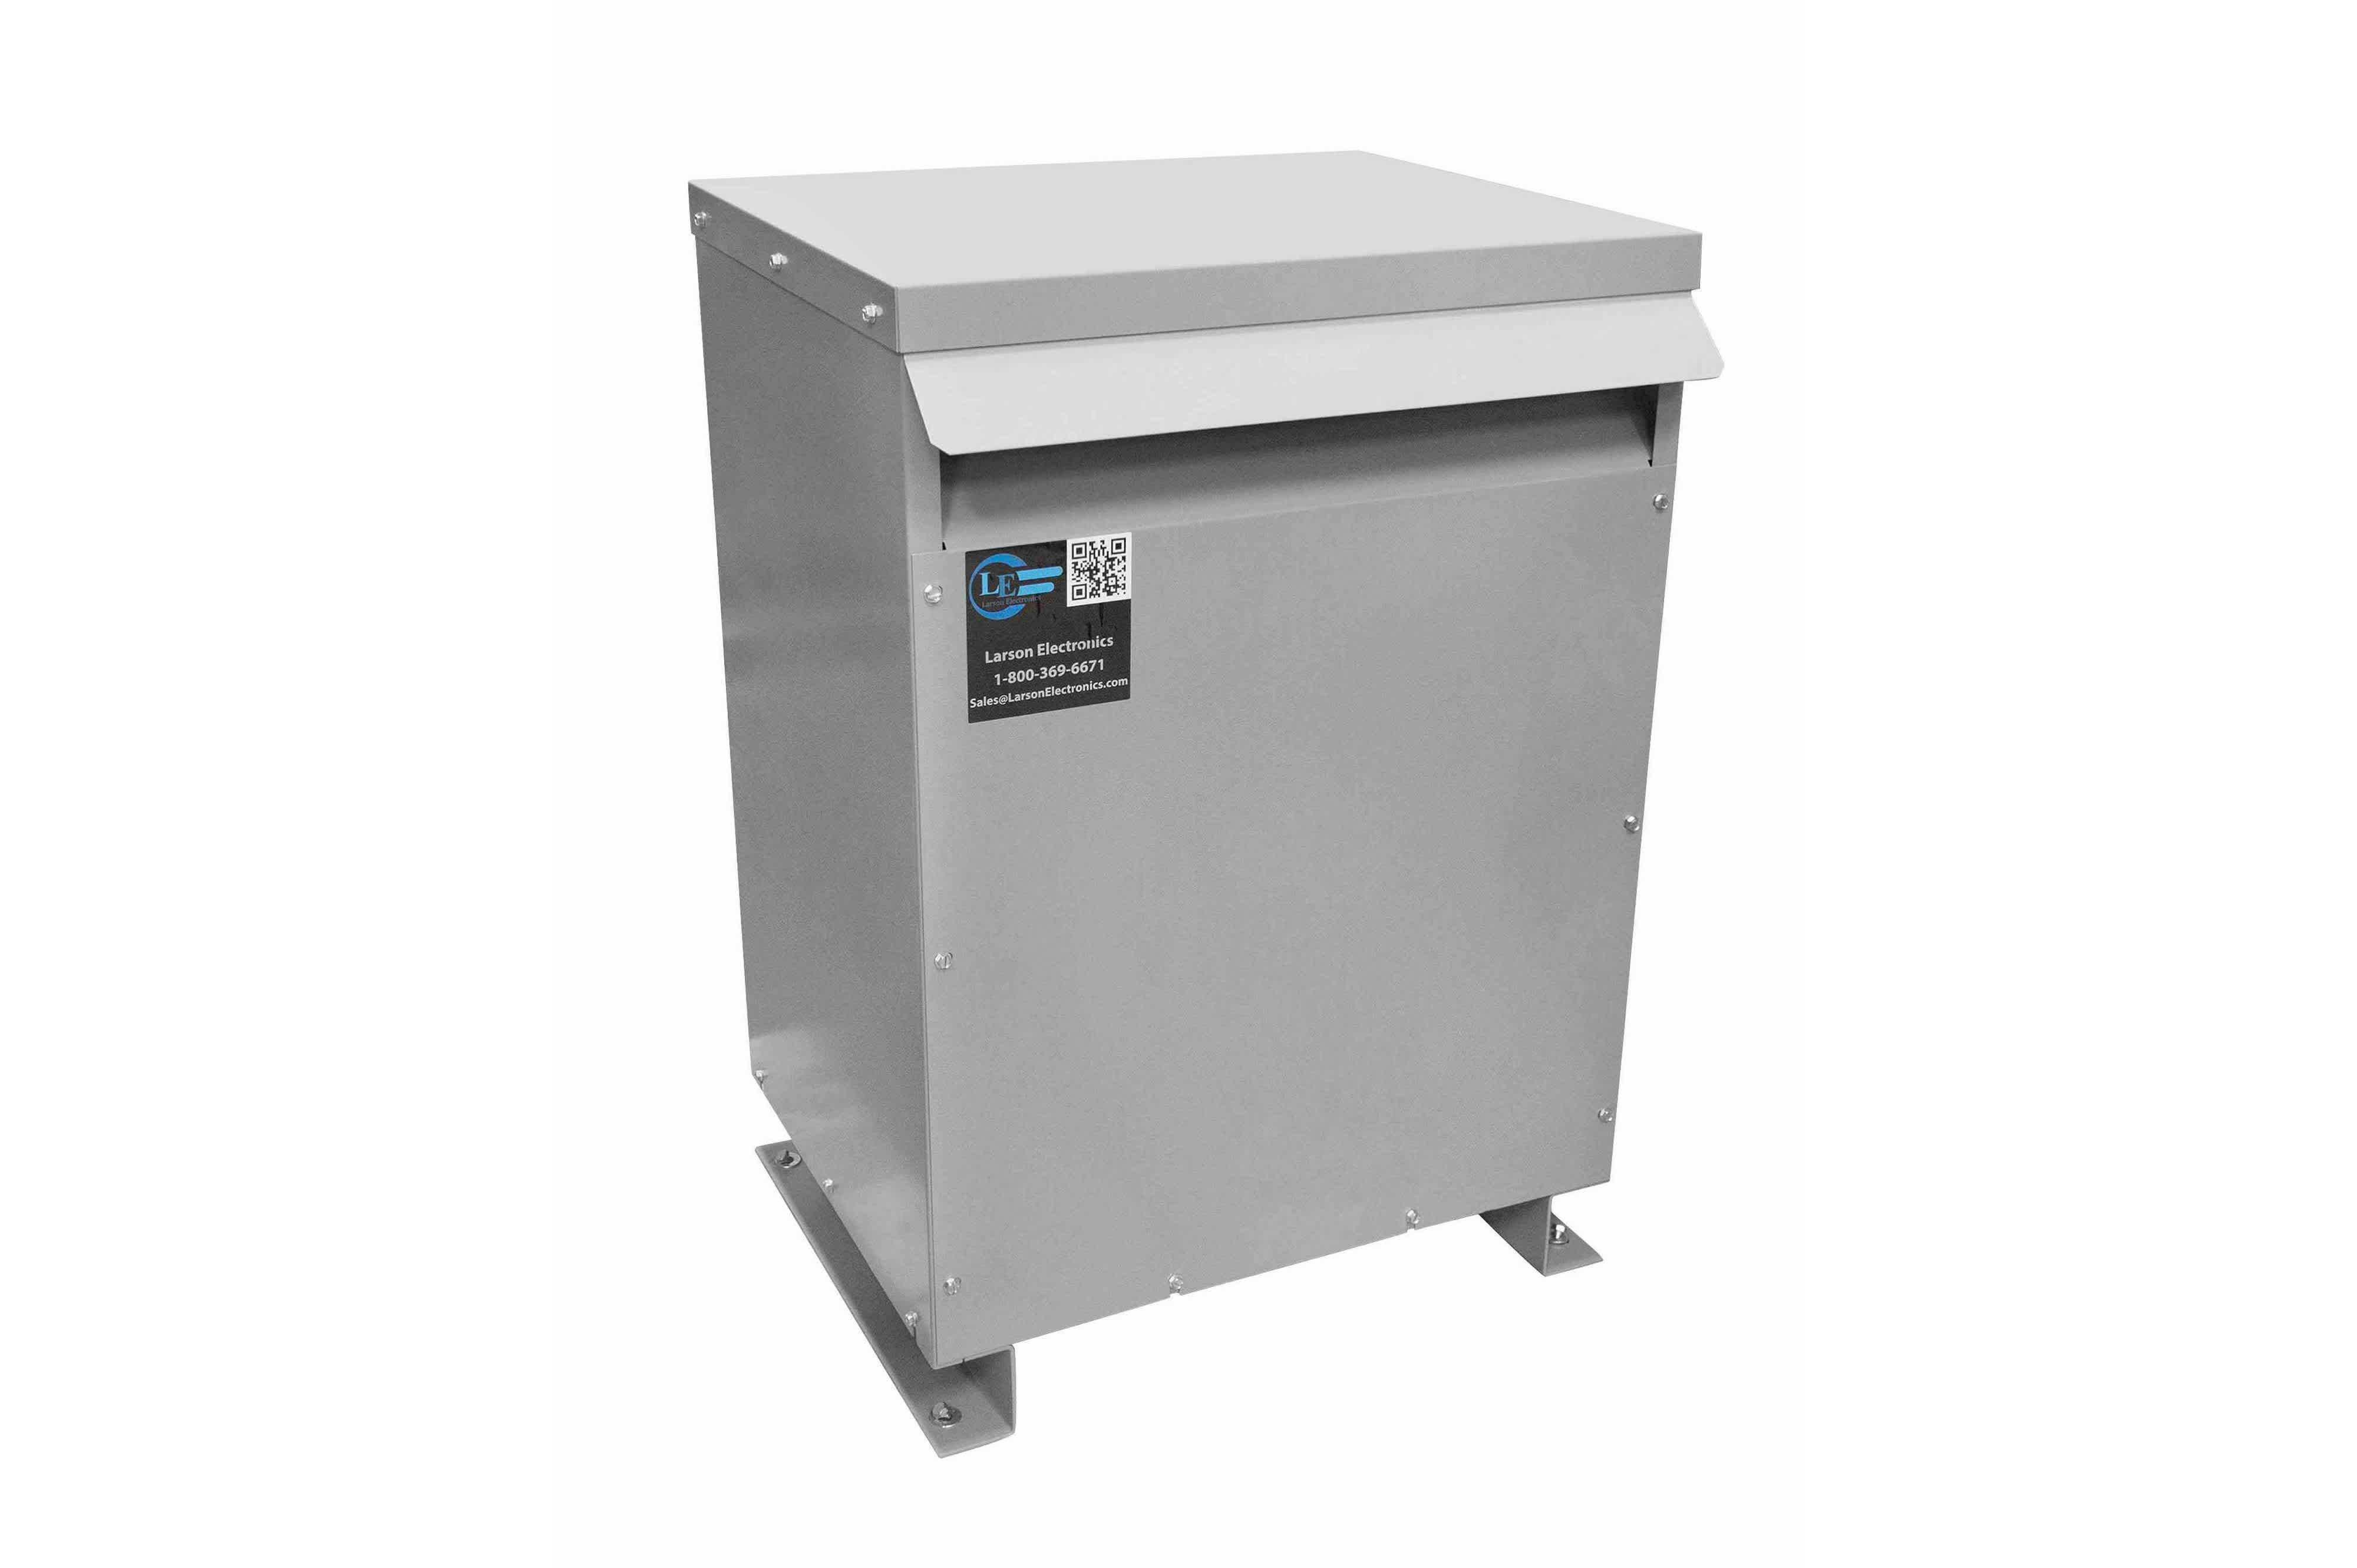 55 kVA 3PH Isolation Transformer, 208V Delta Primary, 240 Delta Secondary, N3R, Ventilated, 60 Hz